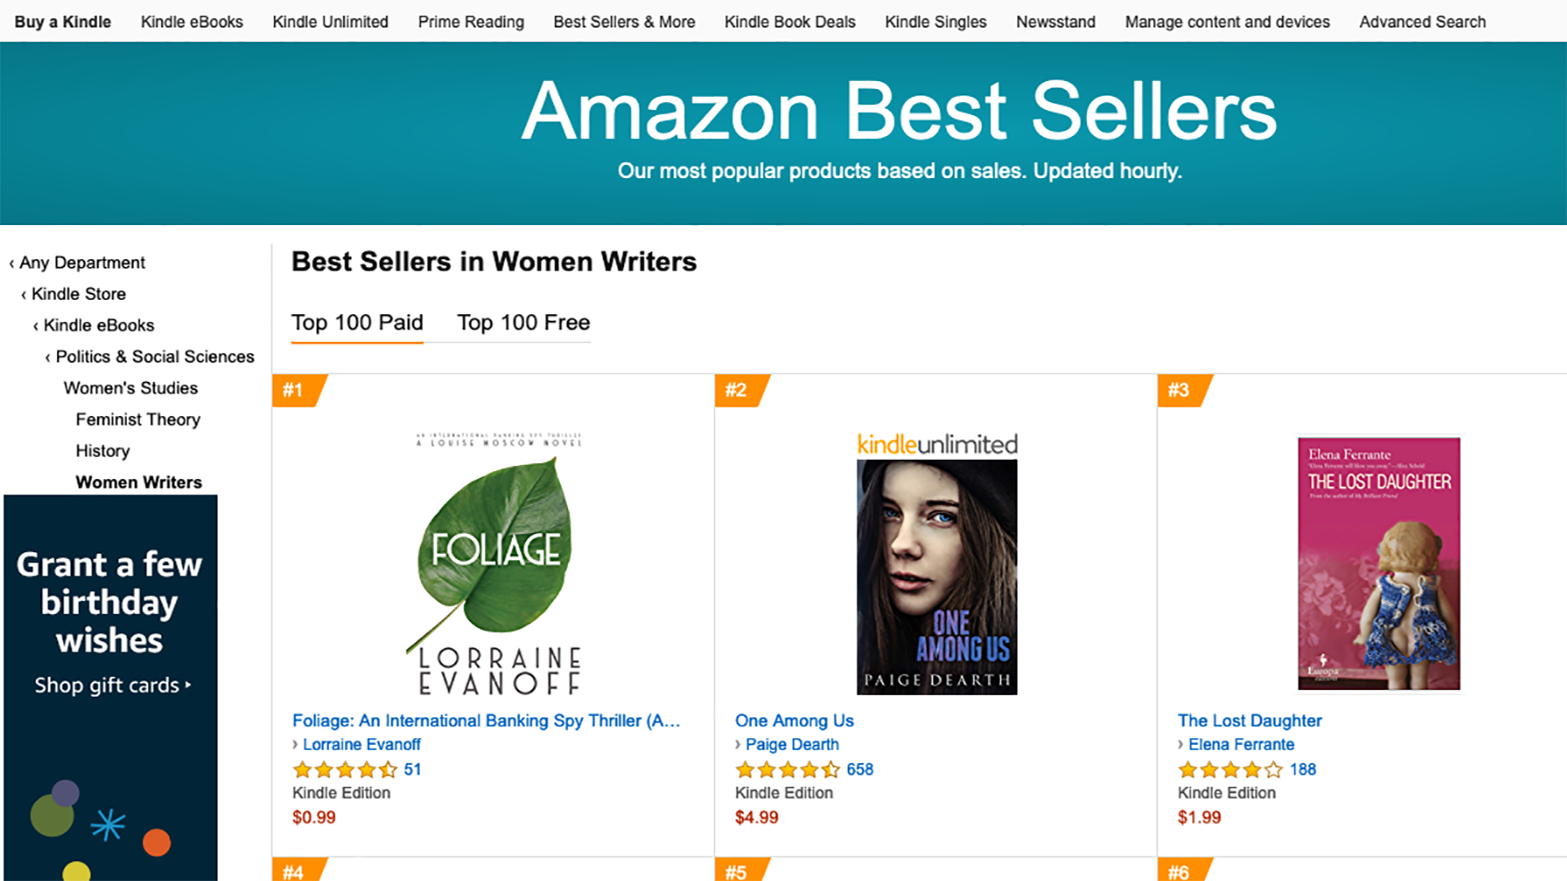 Foliage - Best Seller